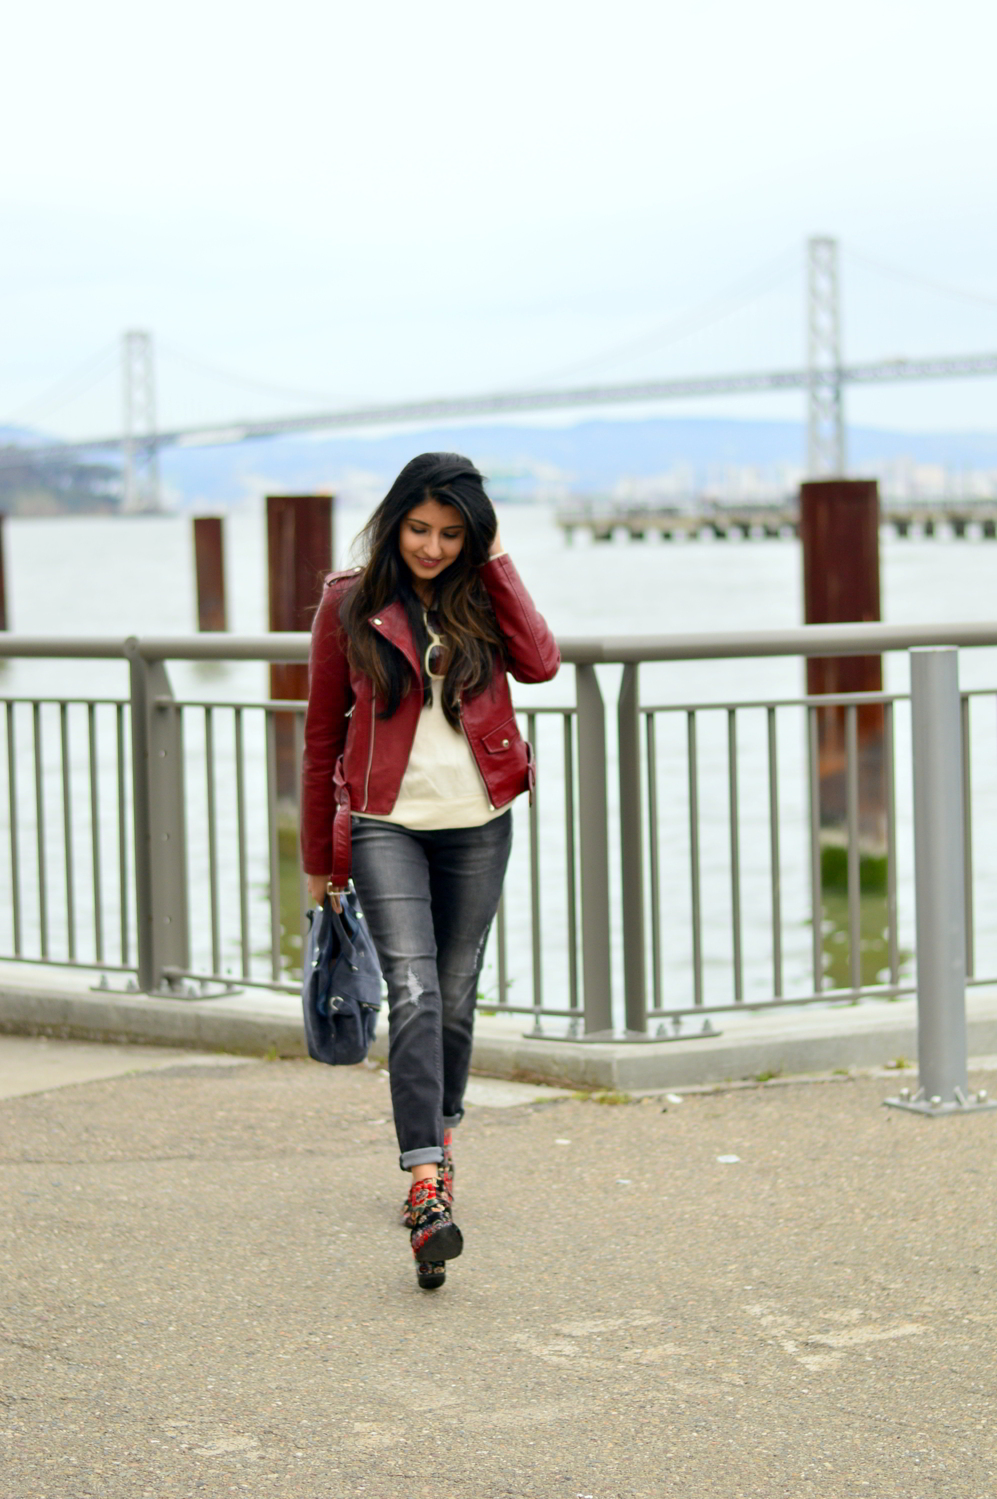 spring-layers-basics-san-francisco-floral-velvet-boots-blogger-outfit 1